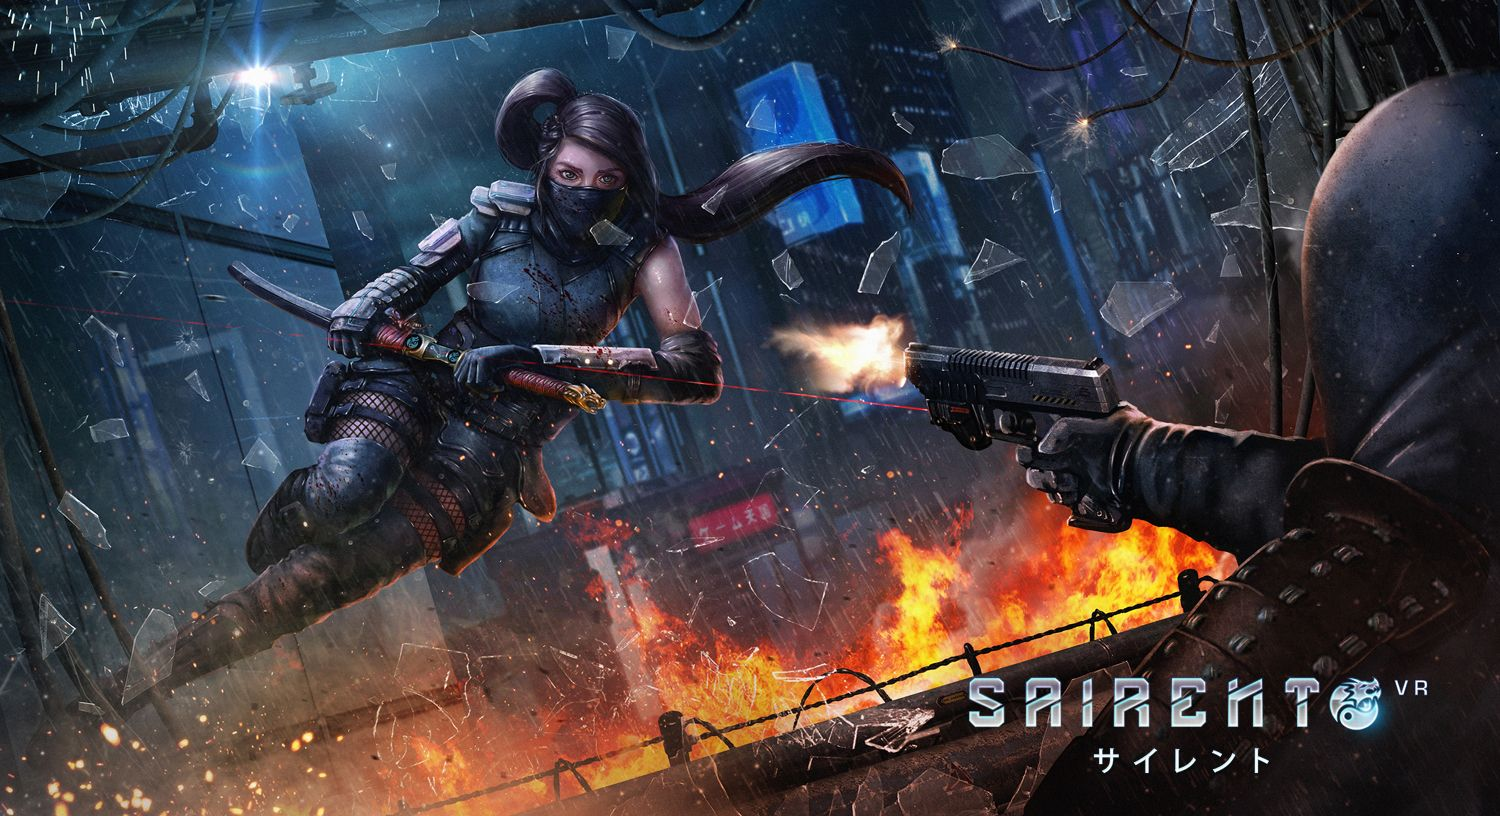 Sairento VR, Intense FPS On Steam Early Access First